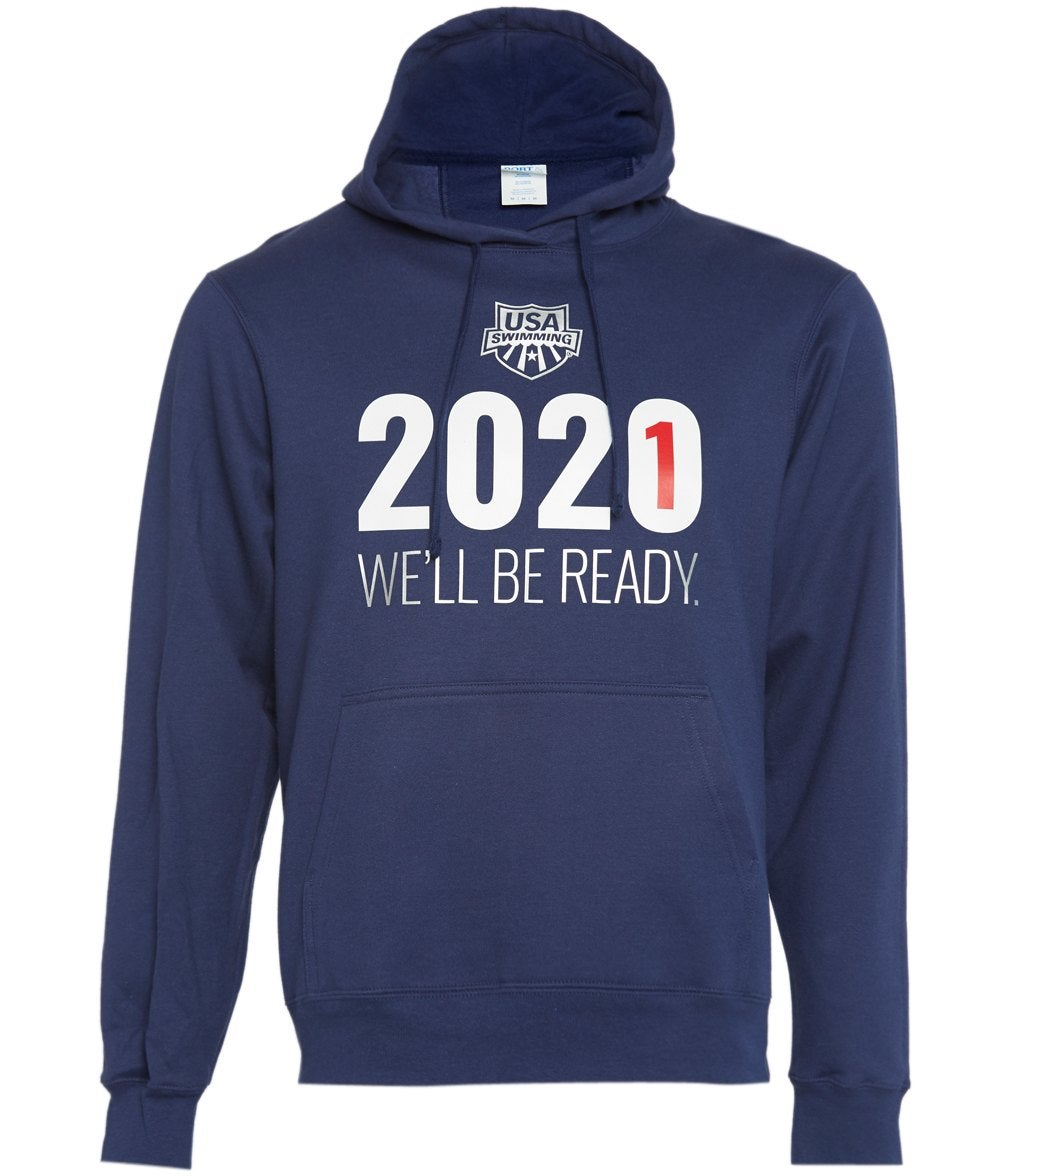 This hoodie is available in navy or red is the most popular item in the 2021 We Will Be Ready Collection, providing warmth and comfort in a relaxed fit and casual style! Proceeds from the sale of this product will go to support U.S. National Team athletes.|https://www.swimoutlet.com/p/usa-swimming-unisex-2021-we-will-be-ready-hooded-sweatshirt-8197127/?color=9343|0|stt1